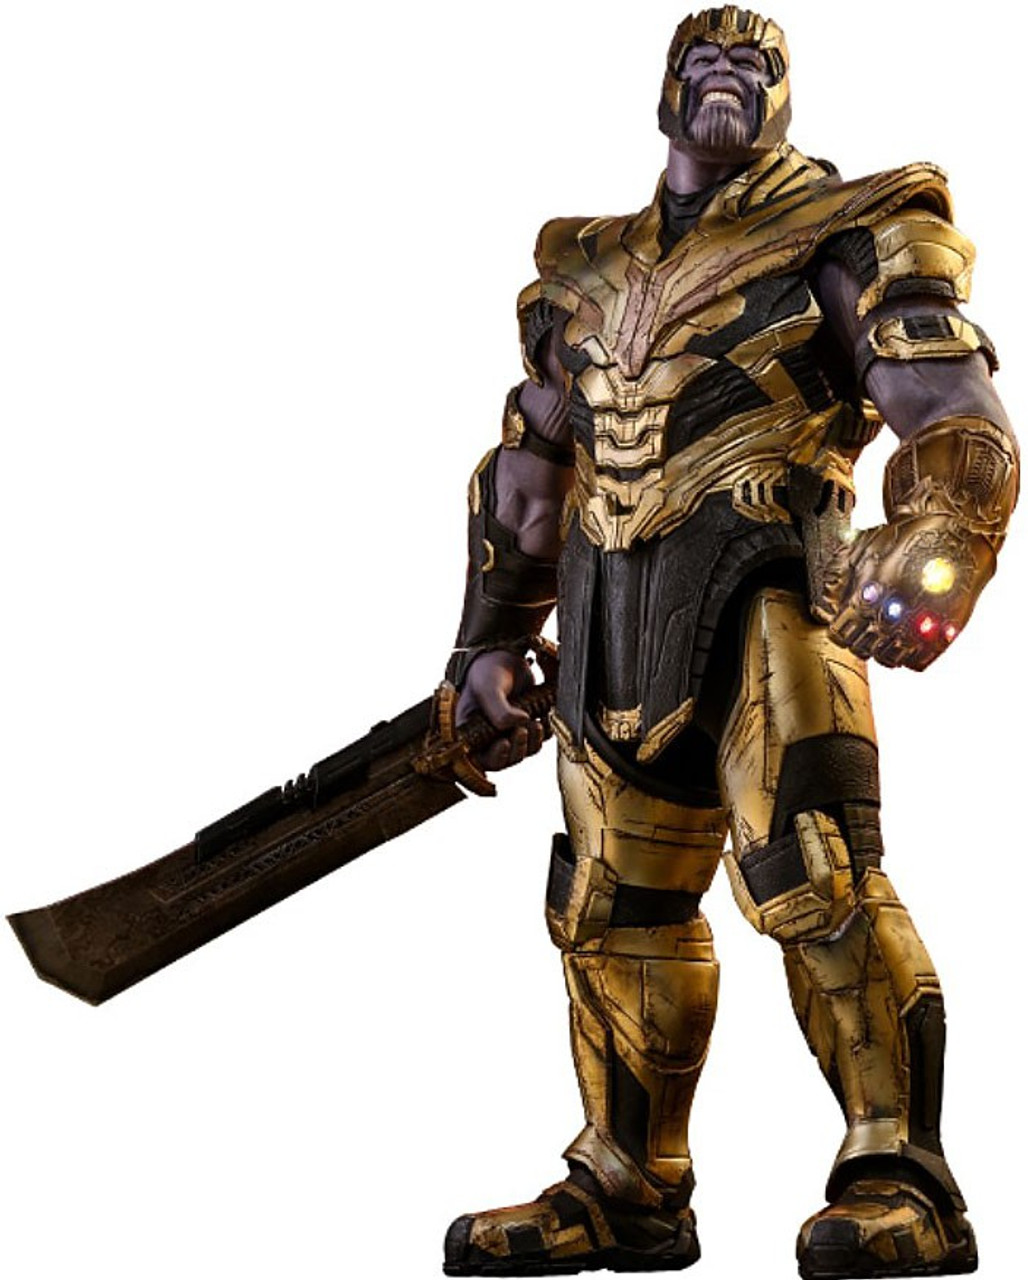 Marvel Avengers Endgame Thanos Collectible Figure MMS529 [Non-Refundable  Deposit] (Pre-Order ships March 2020)